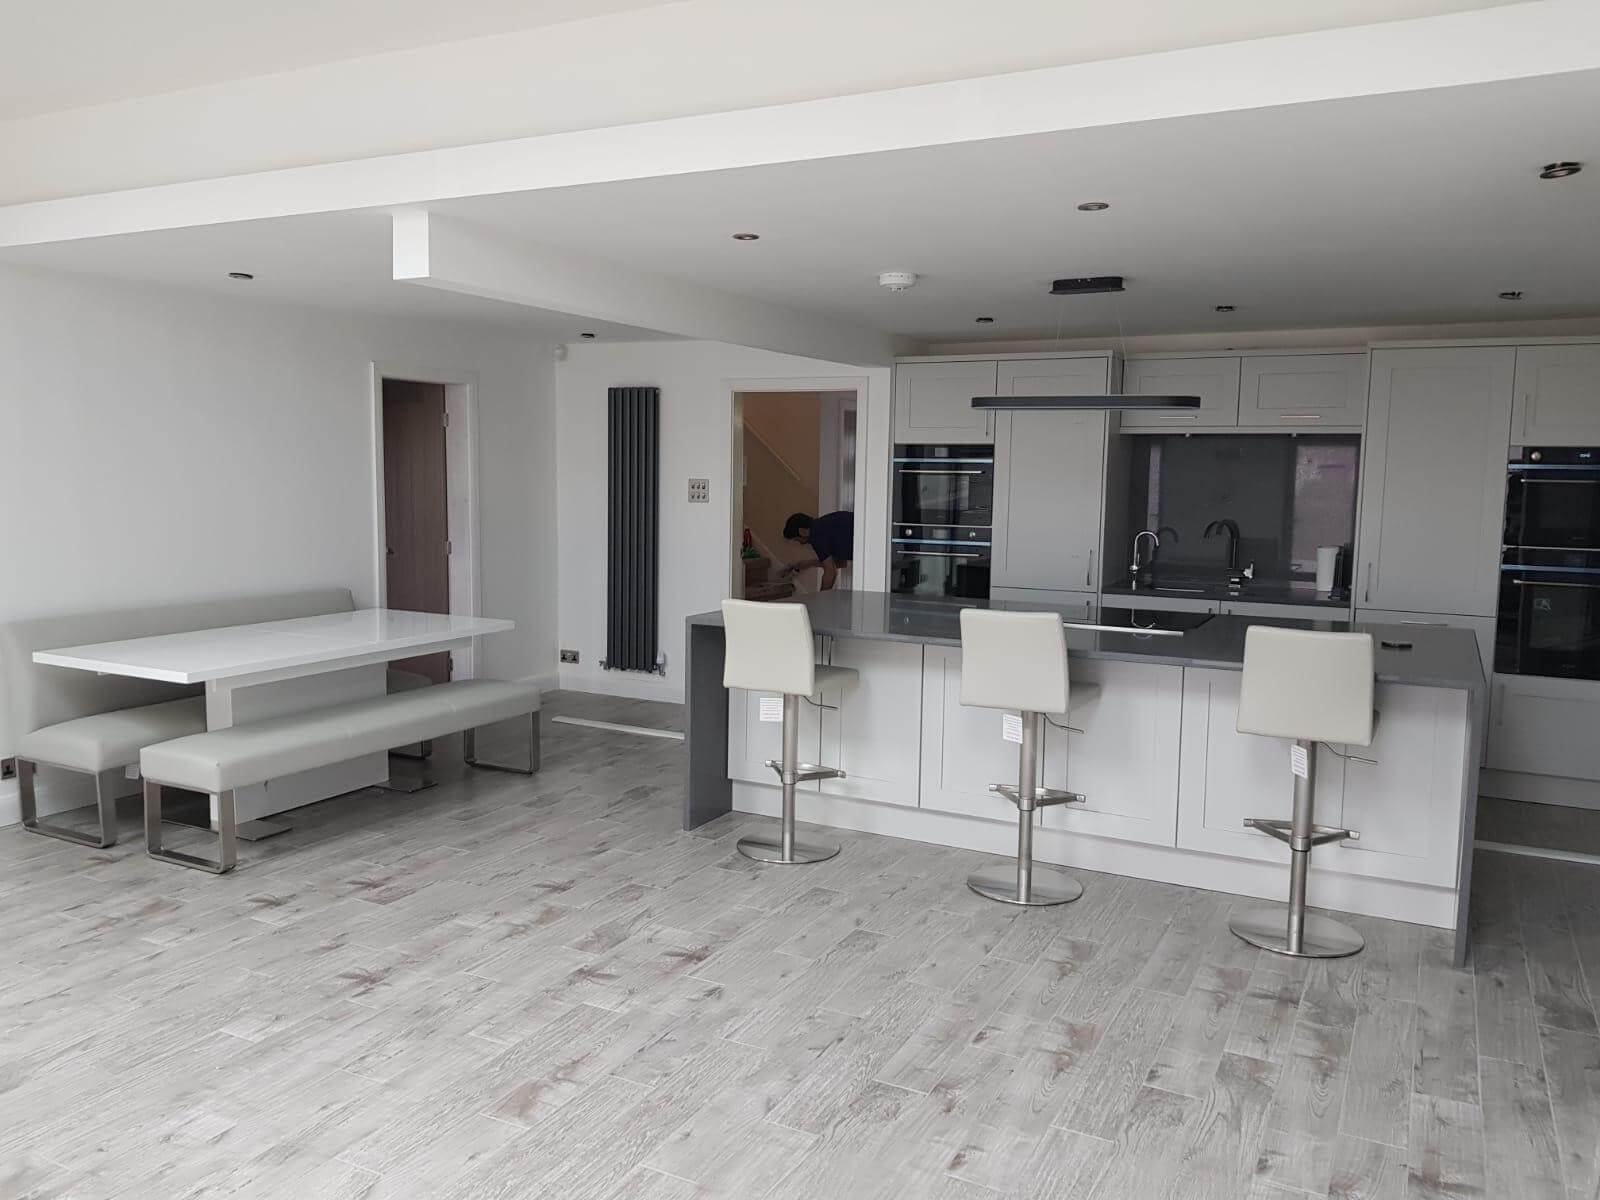 This image shows the kitchen area of an extension in St Helens, Merseyside. Celsius Home Improvements designed and refurbished the kitchen and built the extension.